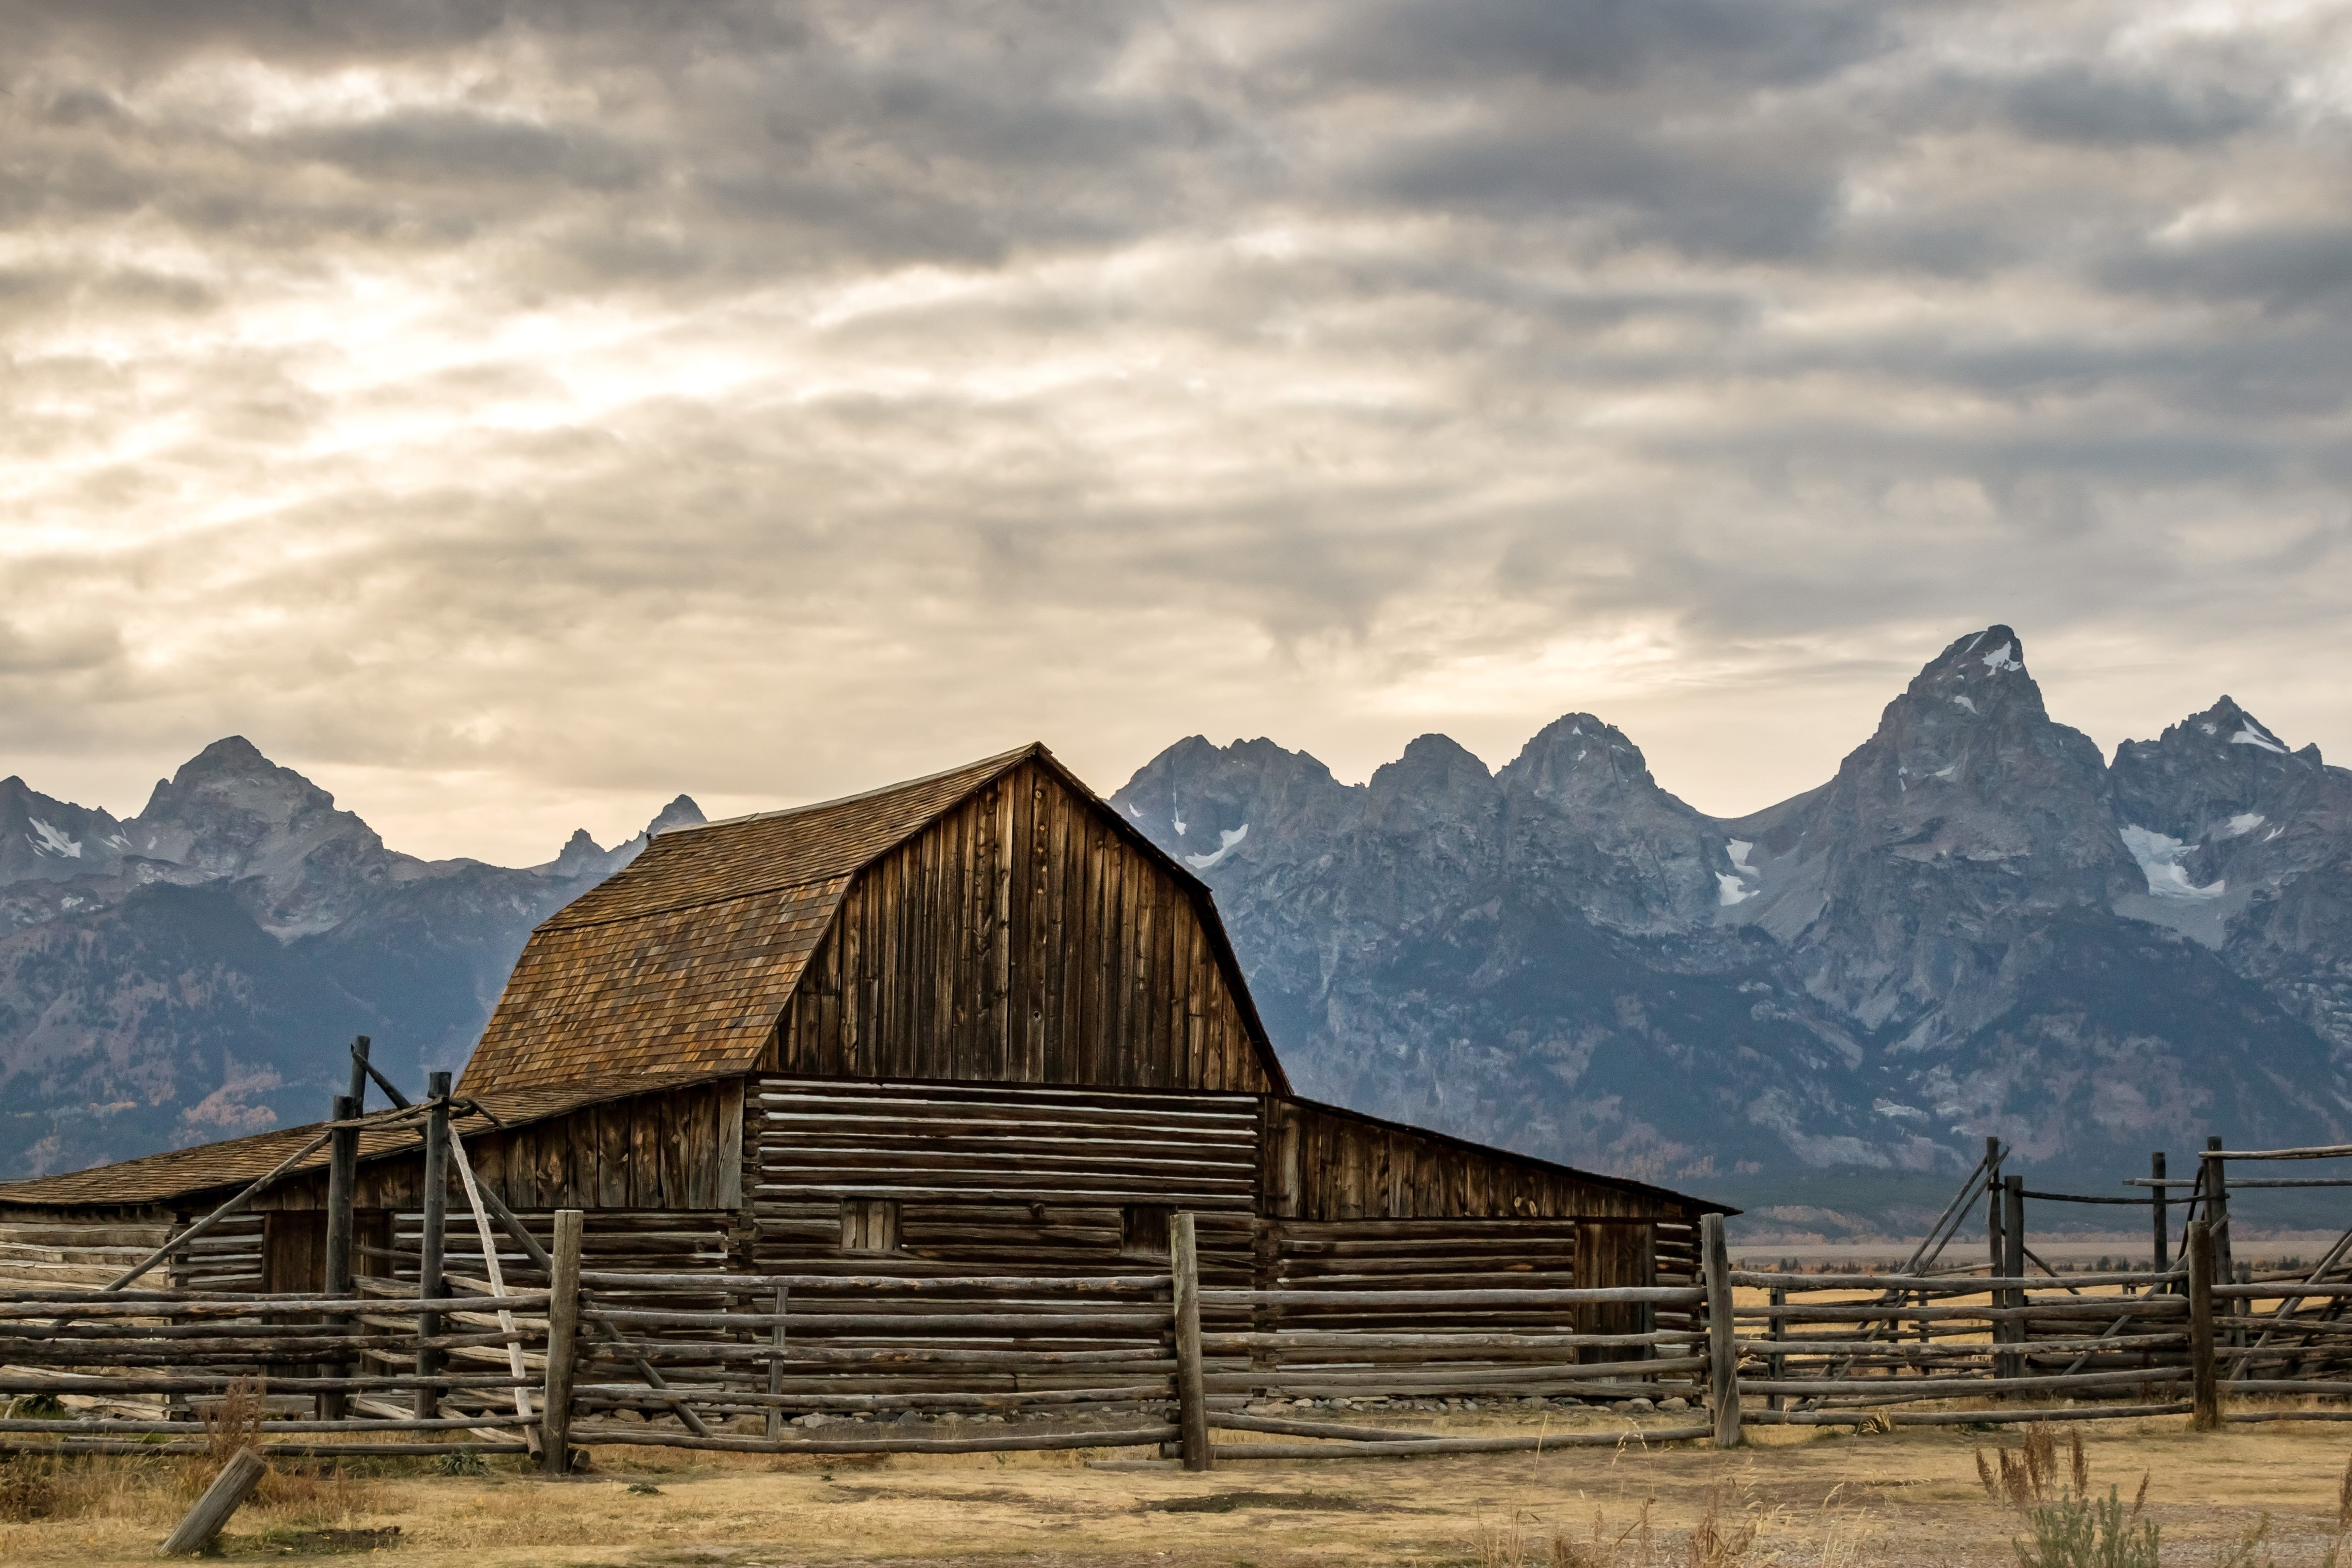 Large barn in front of mountains on a cloudy day